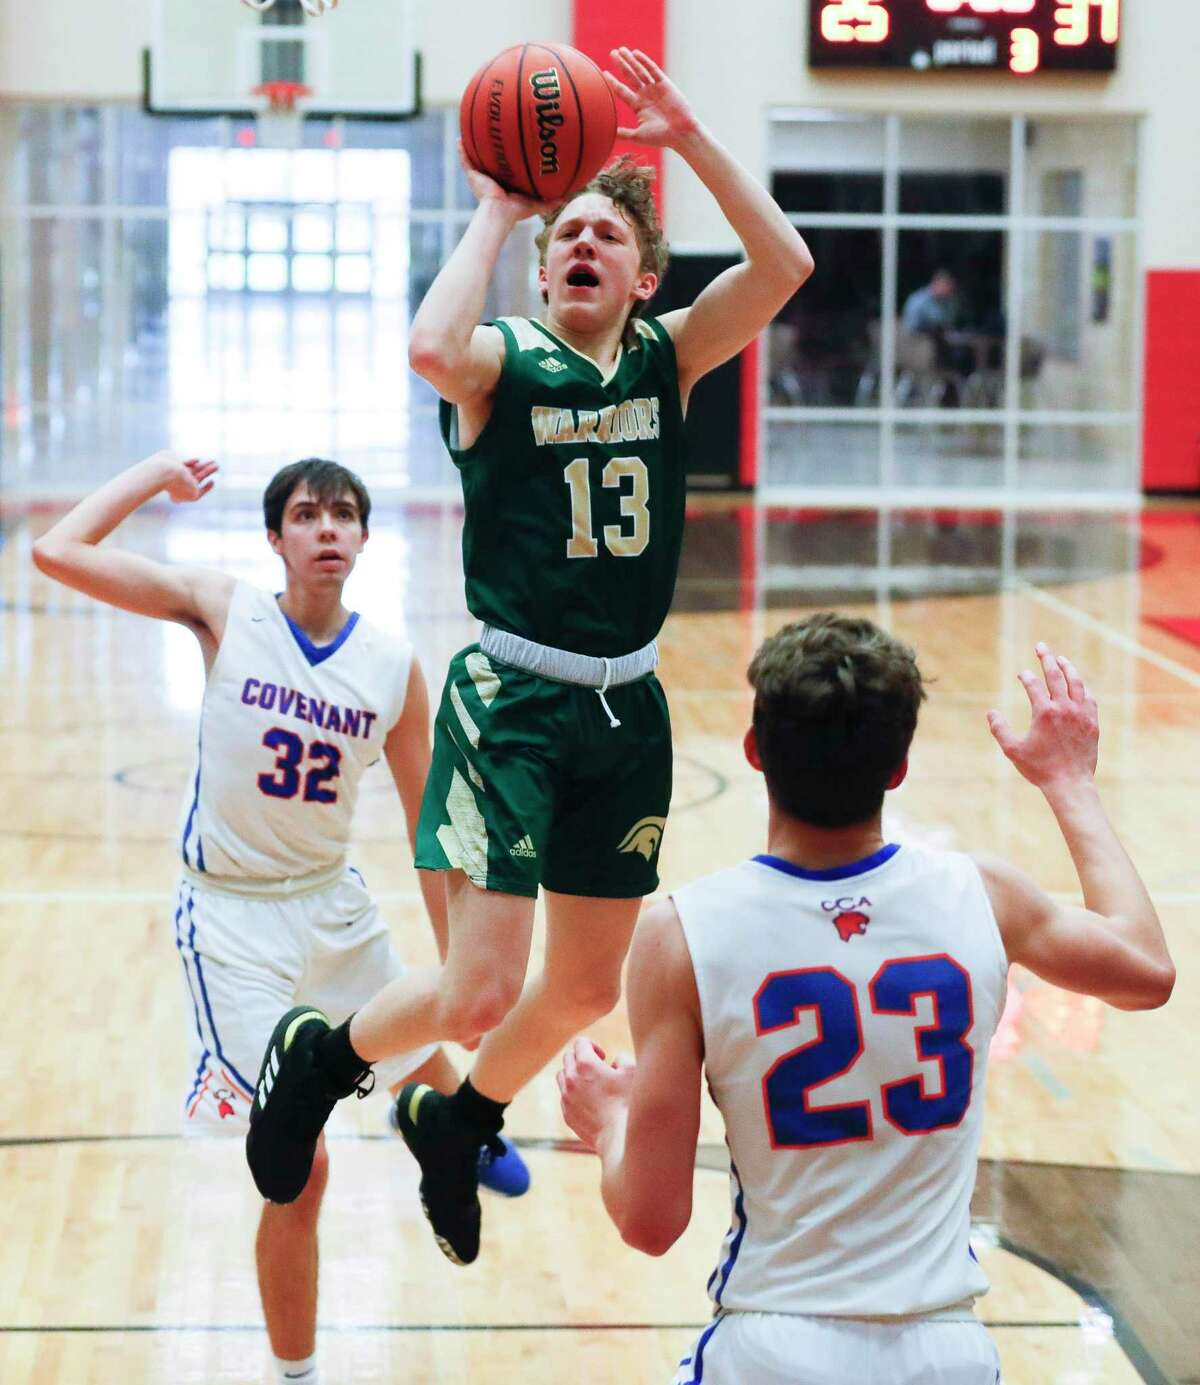 The Woodlands Christian Academy point guard Austin Benigni (13), shown here last season, scored 23 points against St. Pius X on Saturday, Nov. 21, 2020 in The Woodlands.